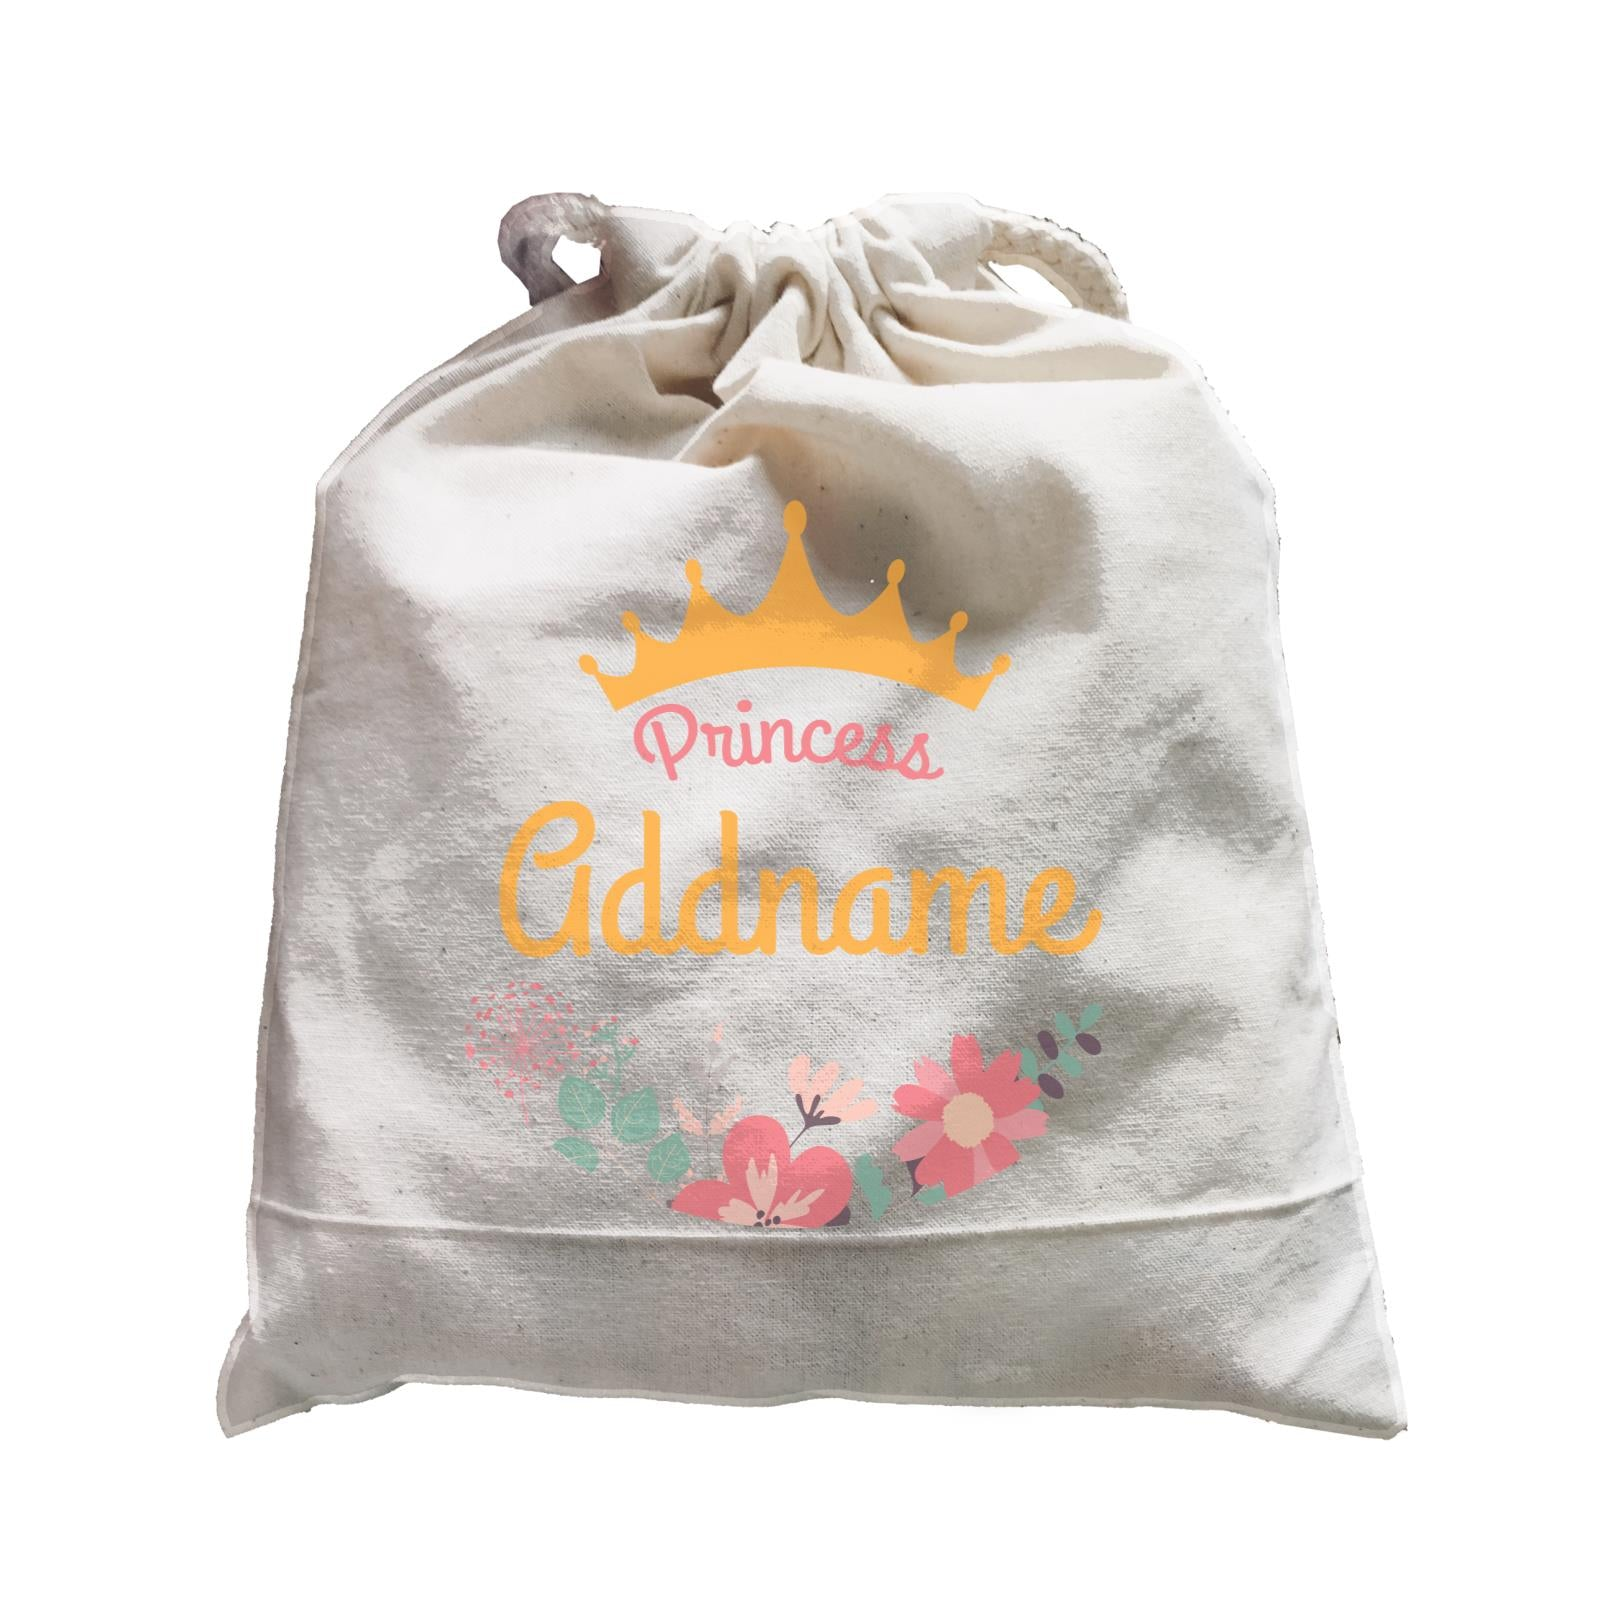 Princess Addname with Tiara and Flowers 2 Satchel